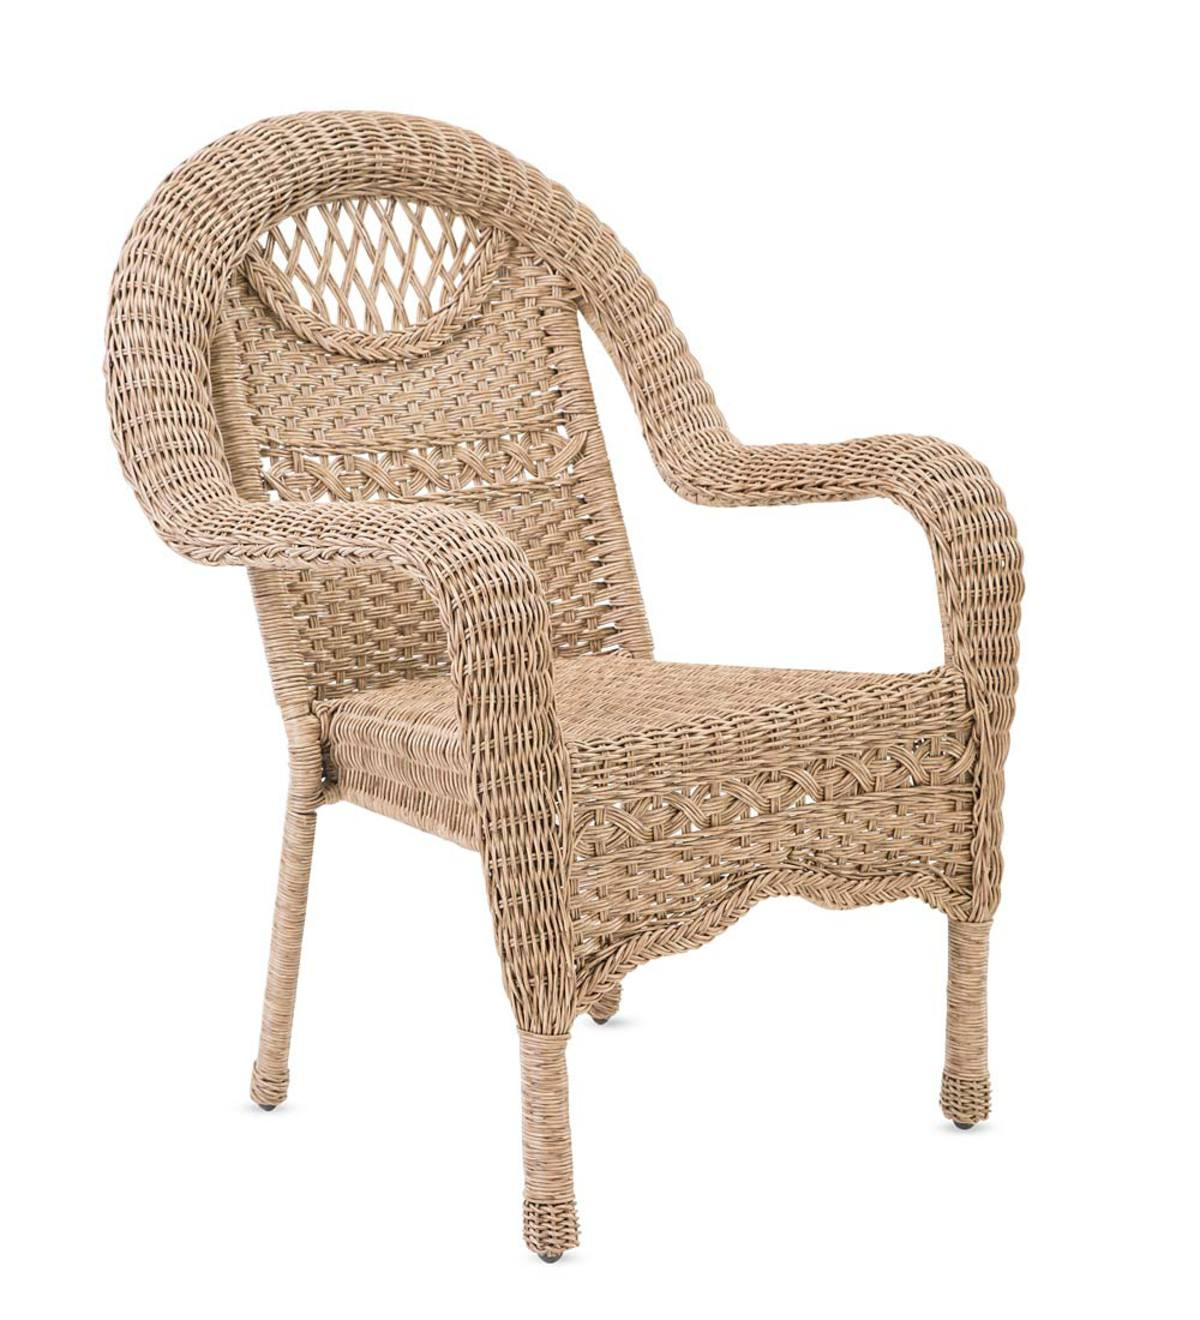 Newest Prospect Hill Wicker Chair In Prospect Hill Wicker Settee Benches (View 9 of 20)